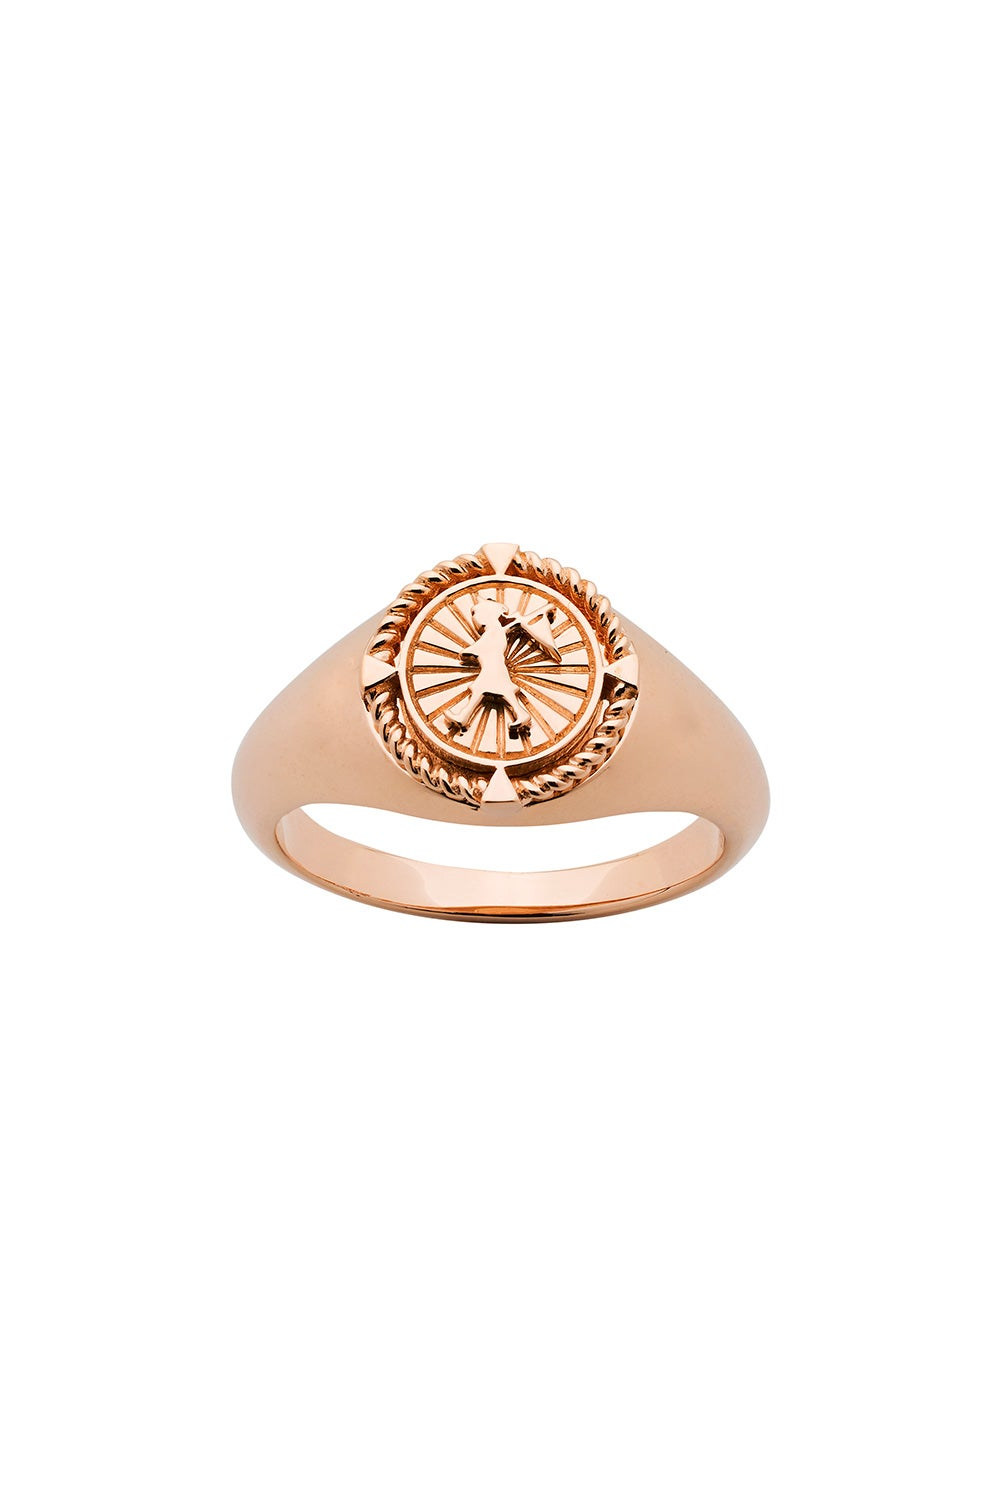 Voyager Signet Ring Rose Gold